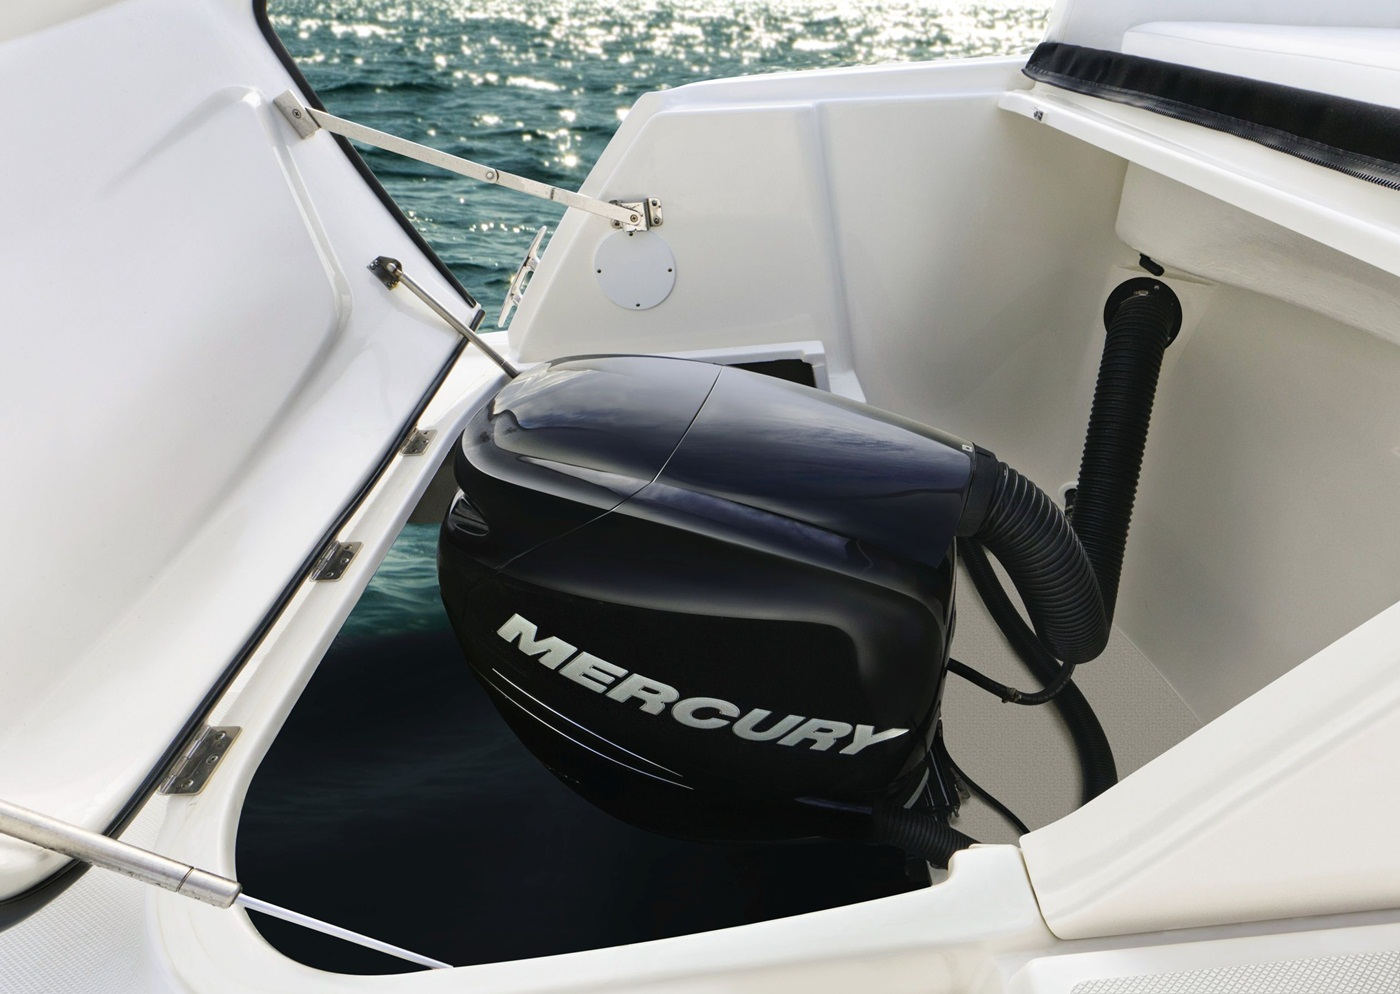 2015 Sea Ray 370 Venture Engines